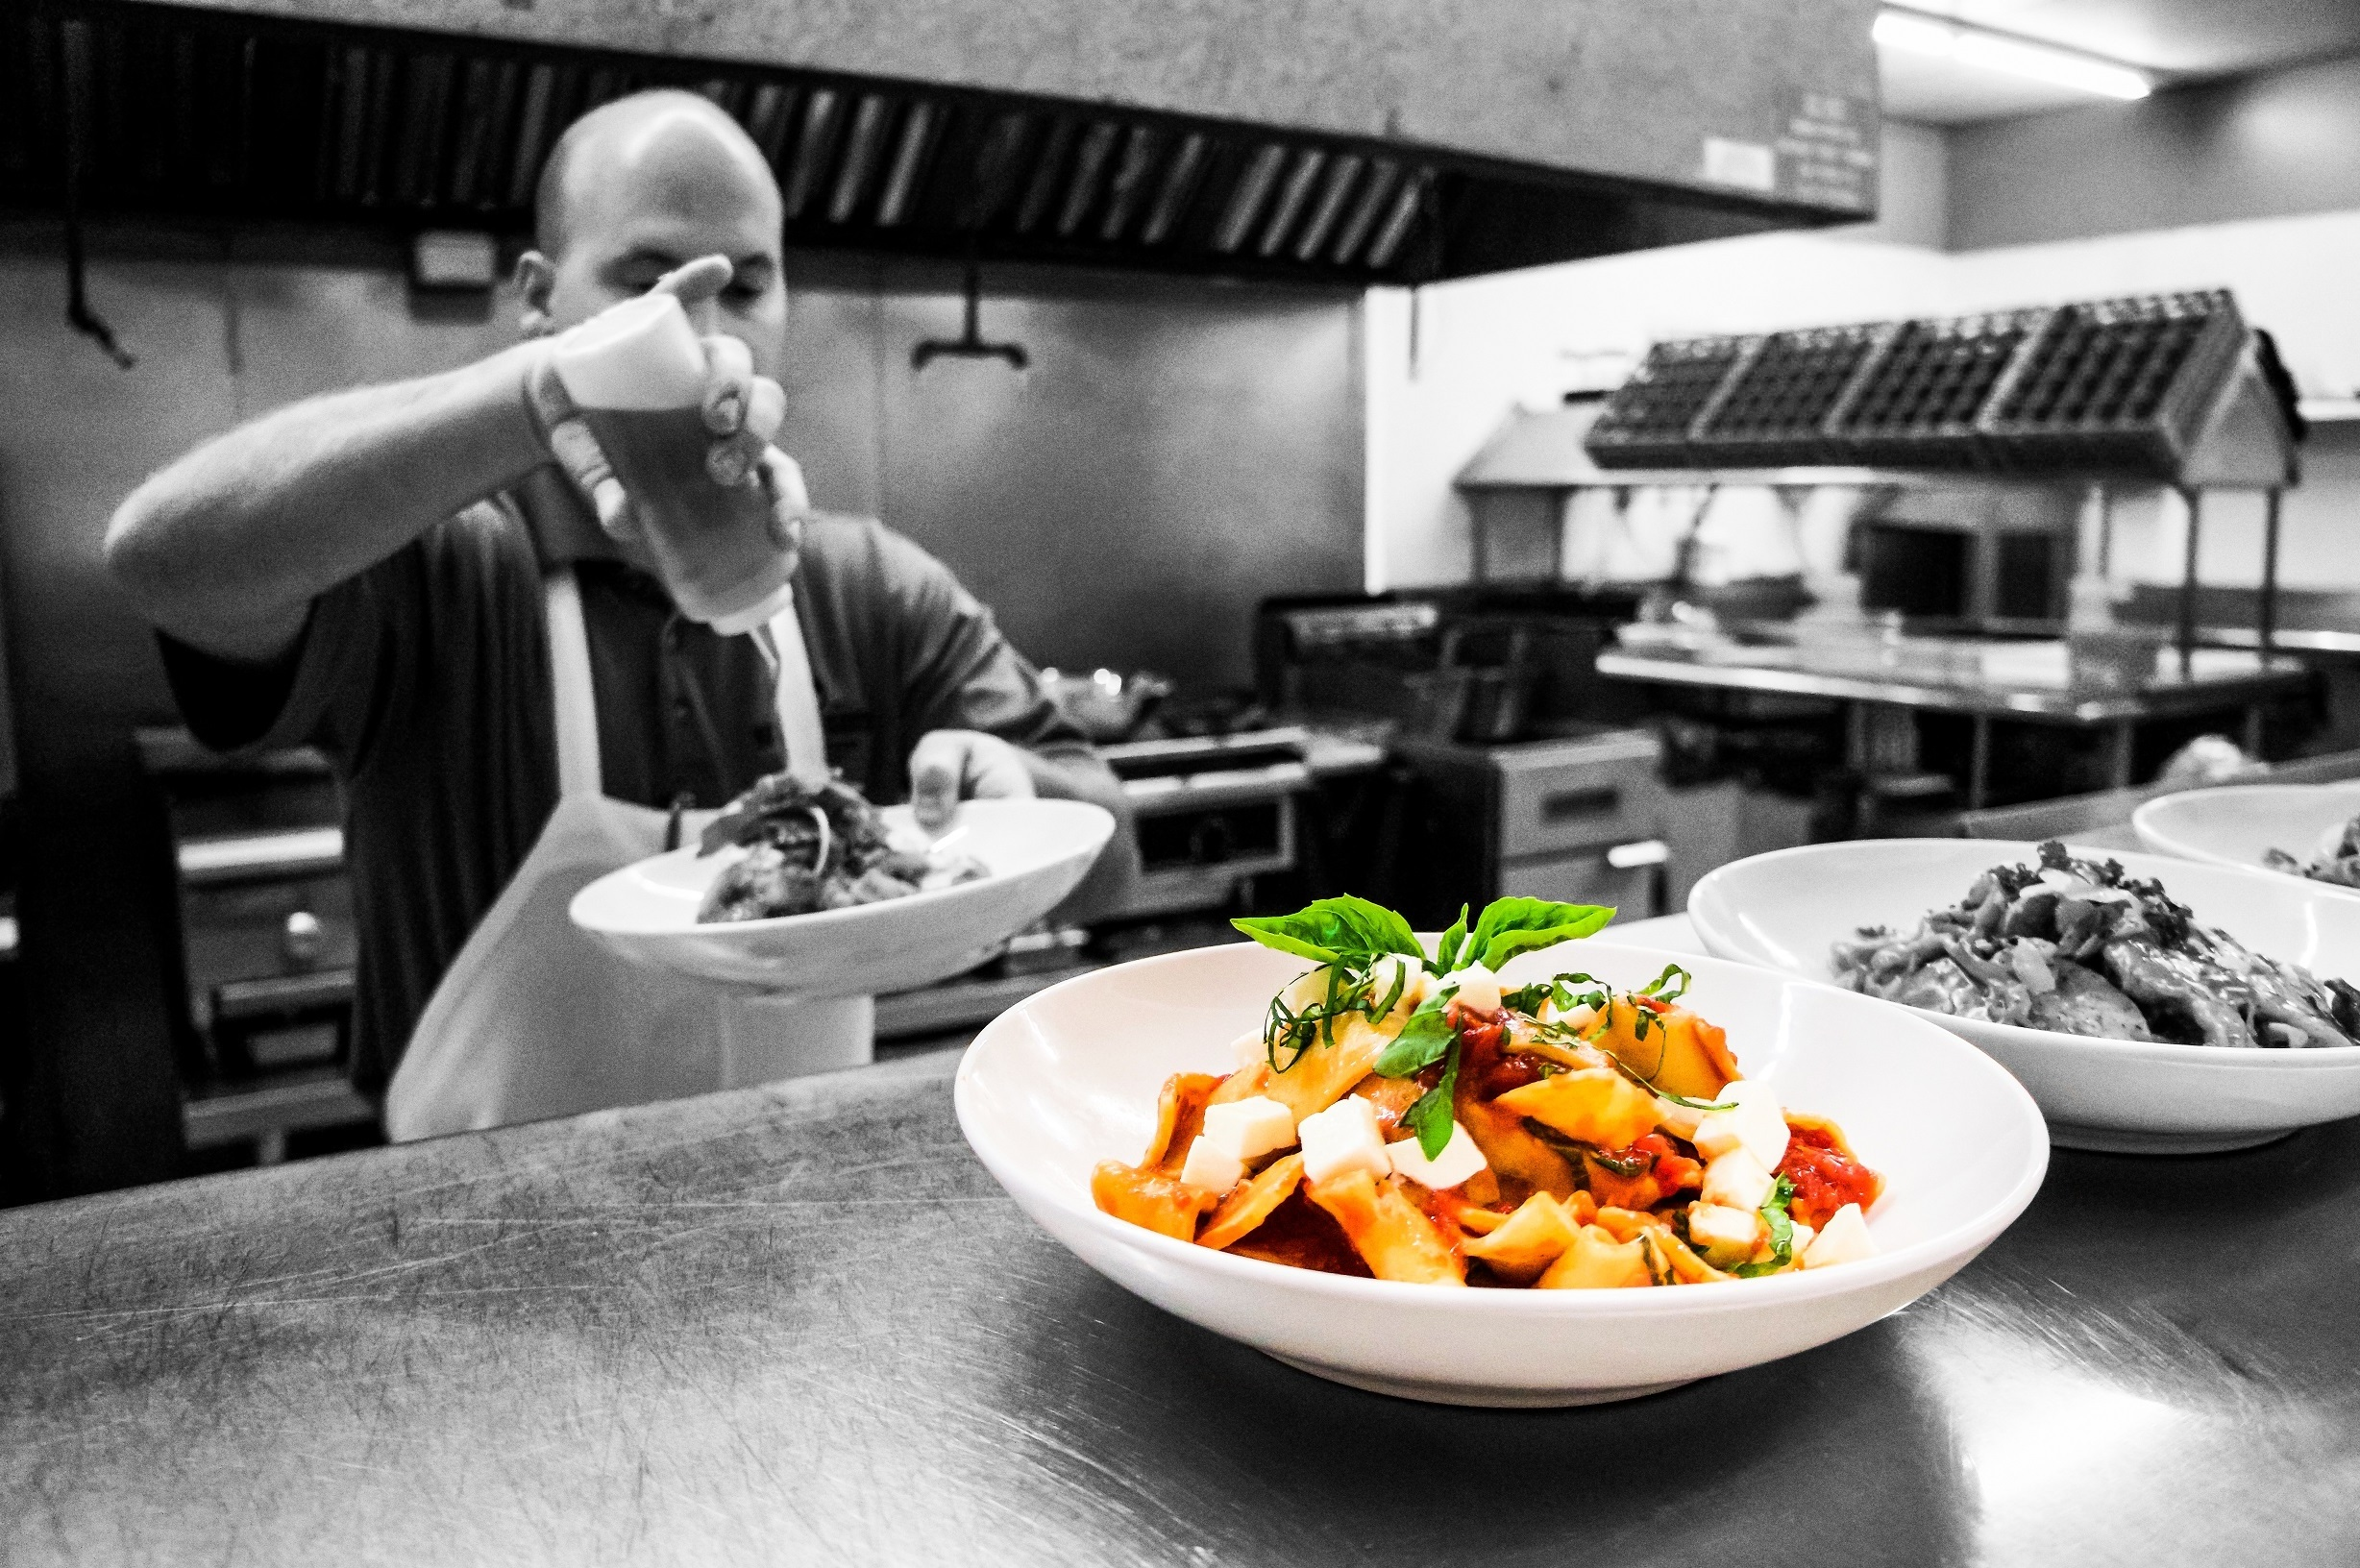 - Every dish is prepared fresh to-order featuring house made ingredients and personal touches from both Chef Matt and Chef John.